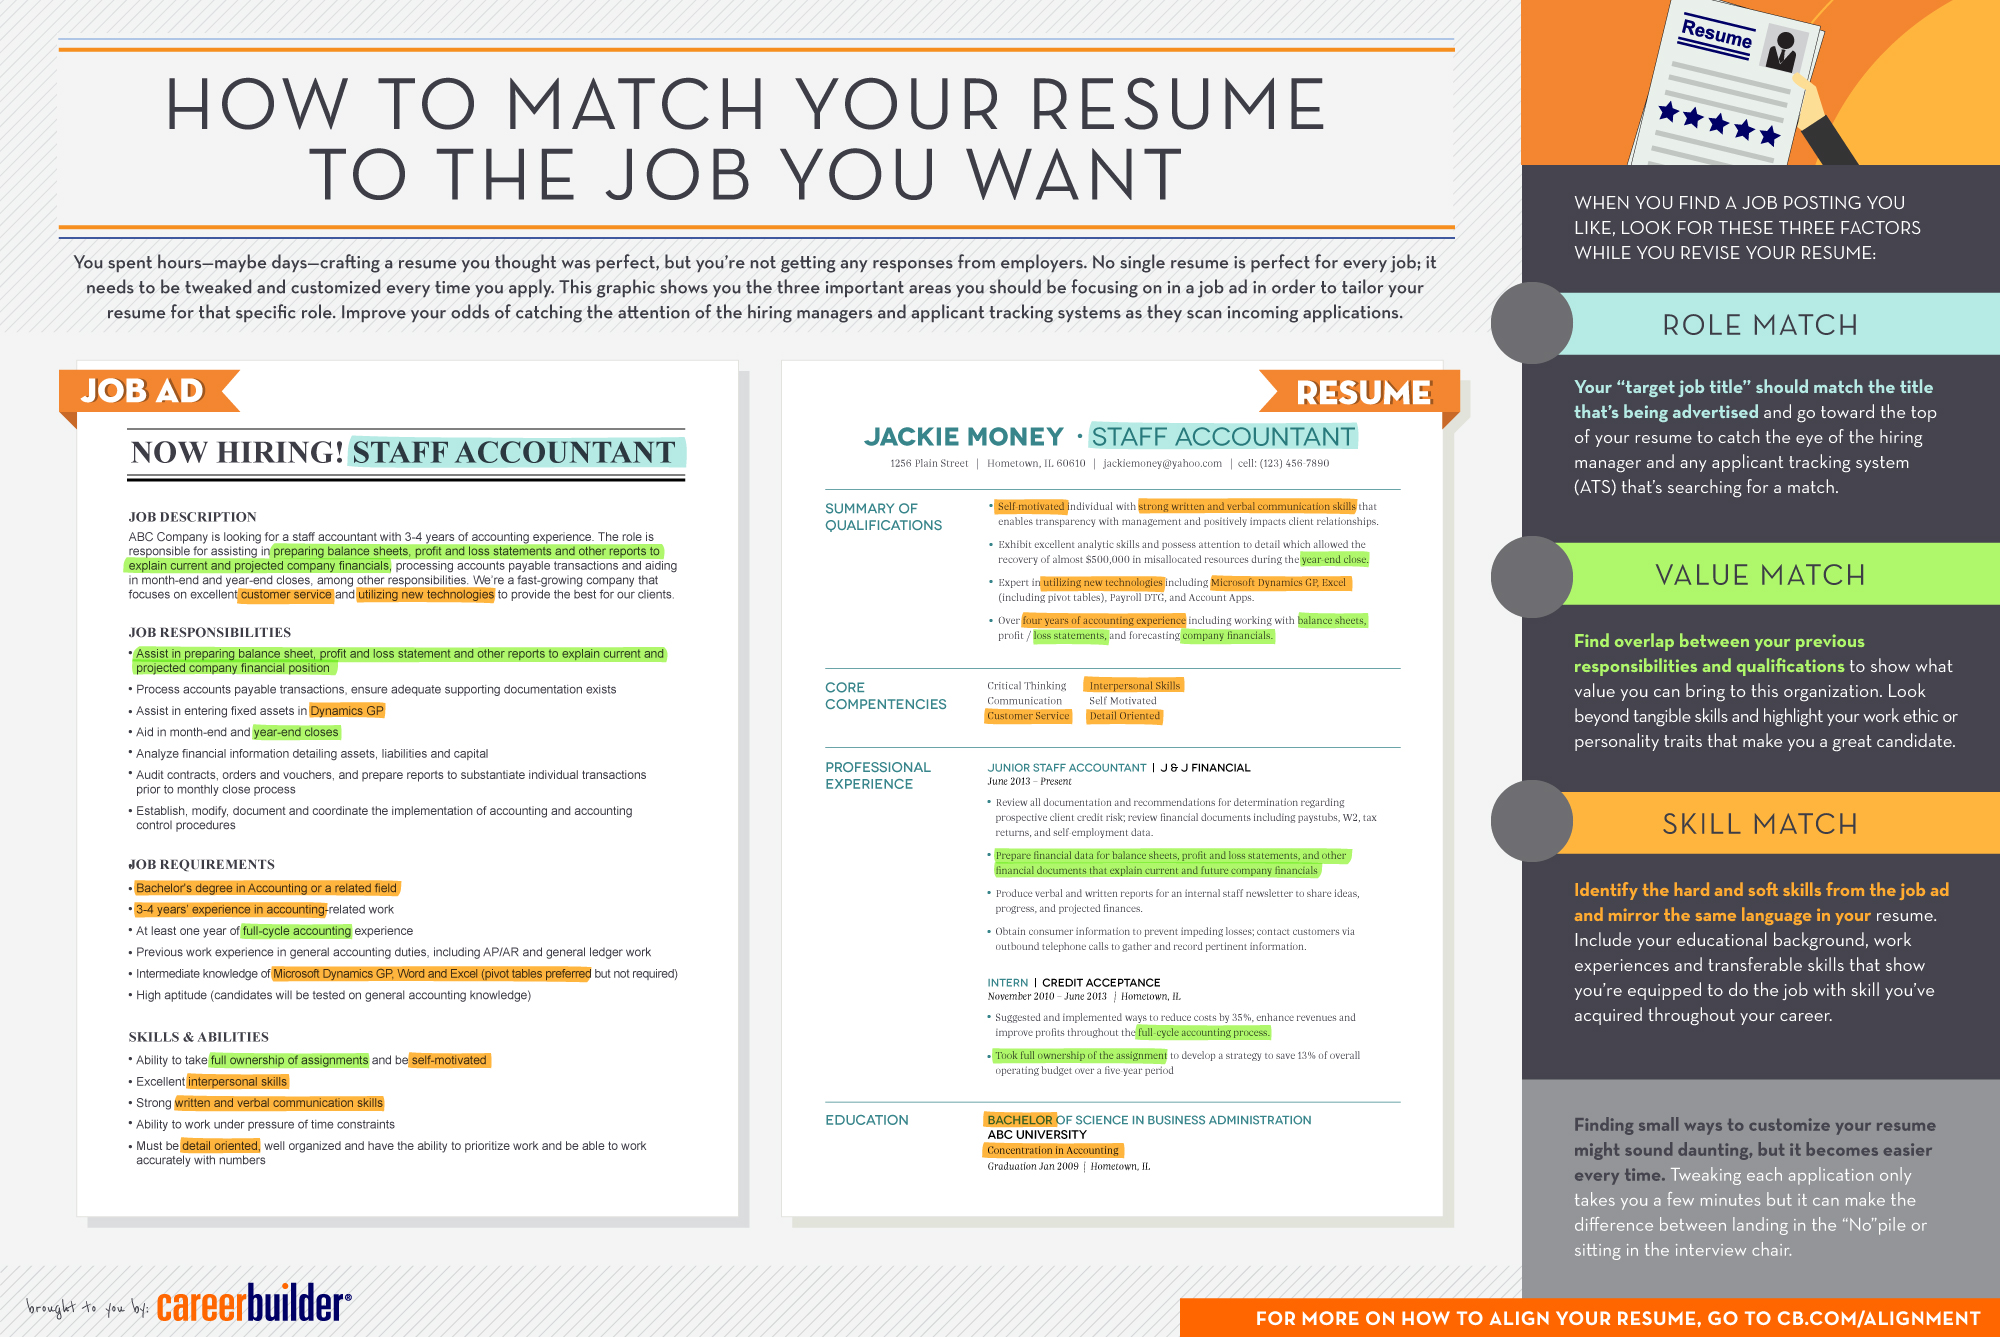 IFO 0044_CustomResume_Snippet  Career Builder Resumes